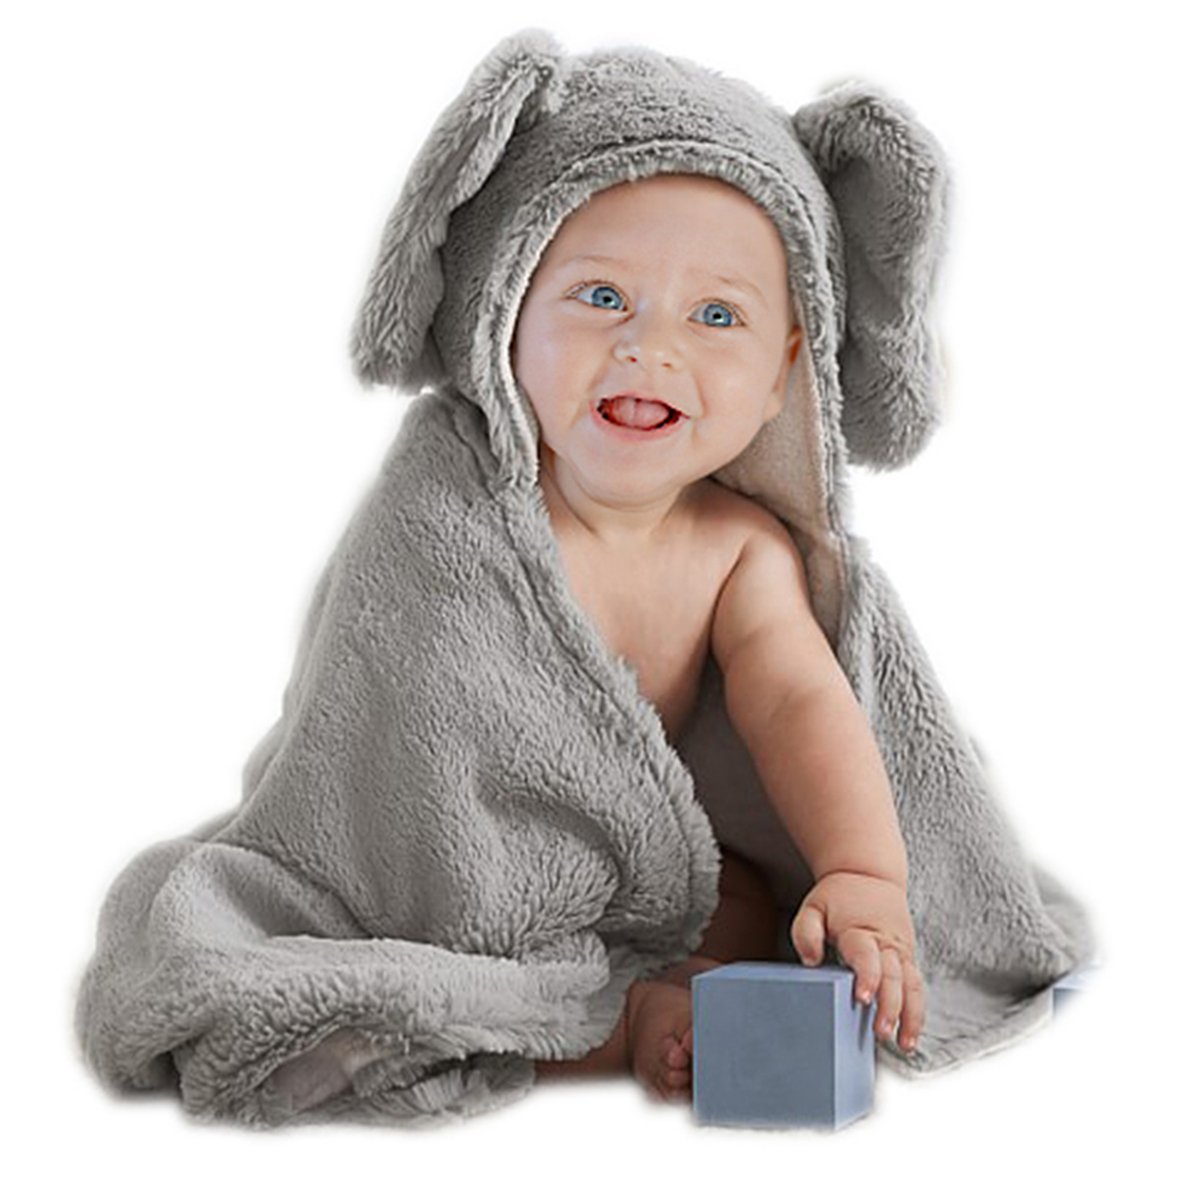 Elephant Grey Baby Hooded Plush Towel Cotton Baby Shower Gift for Toddle Infant Girls and Boys by Babyplix 001myldxt